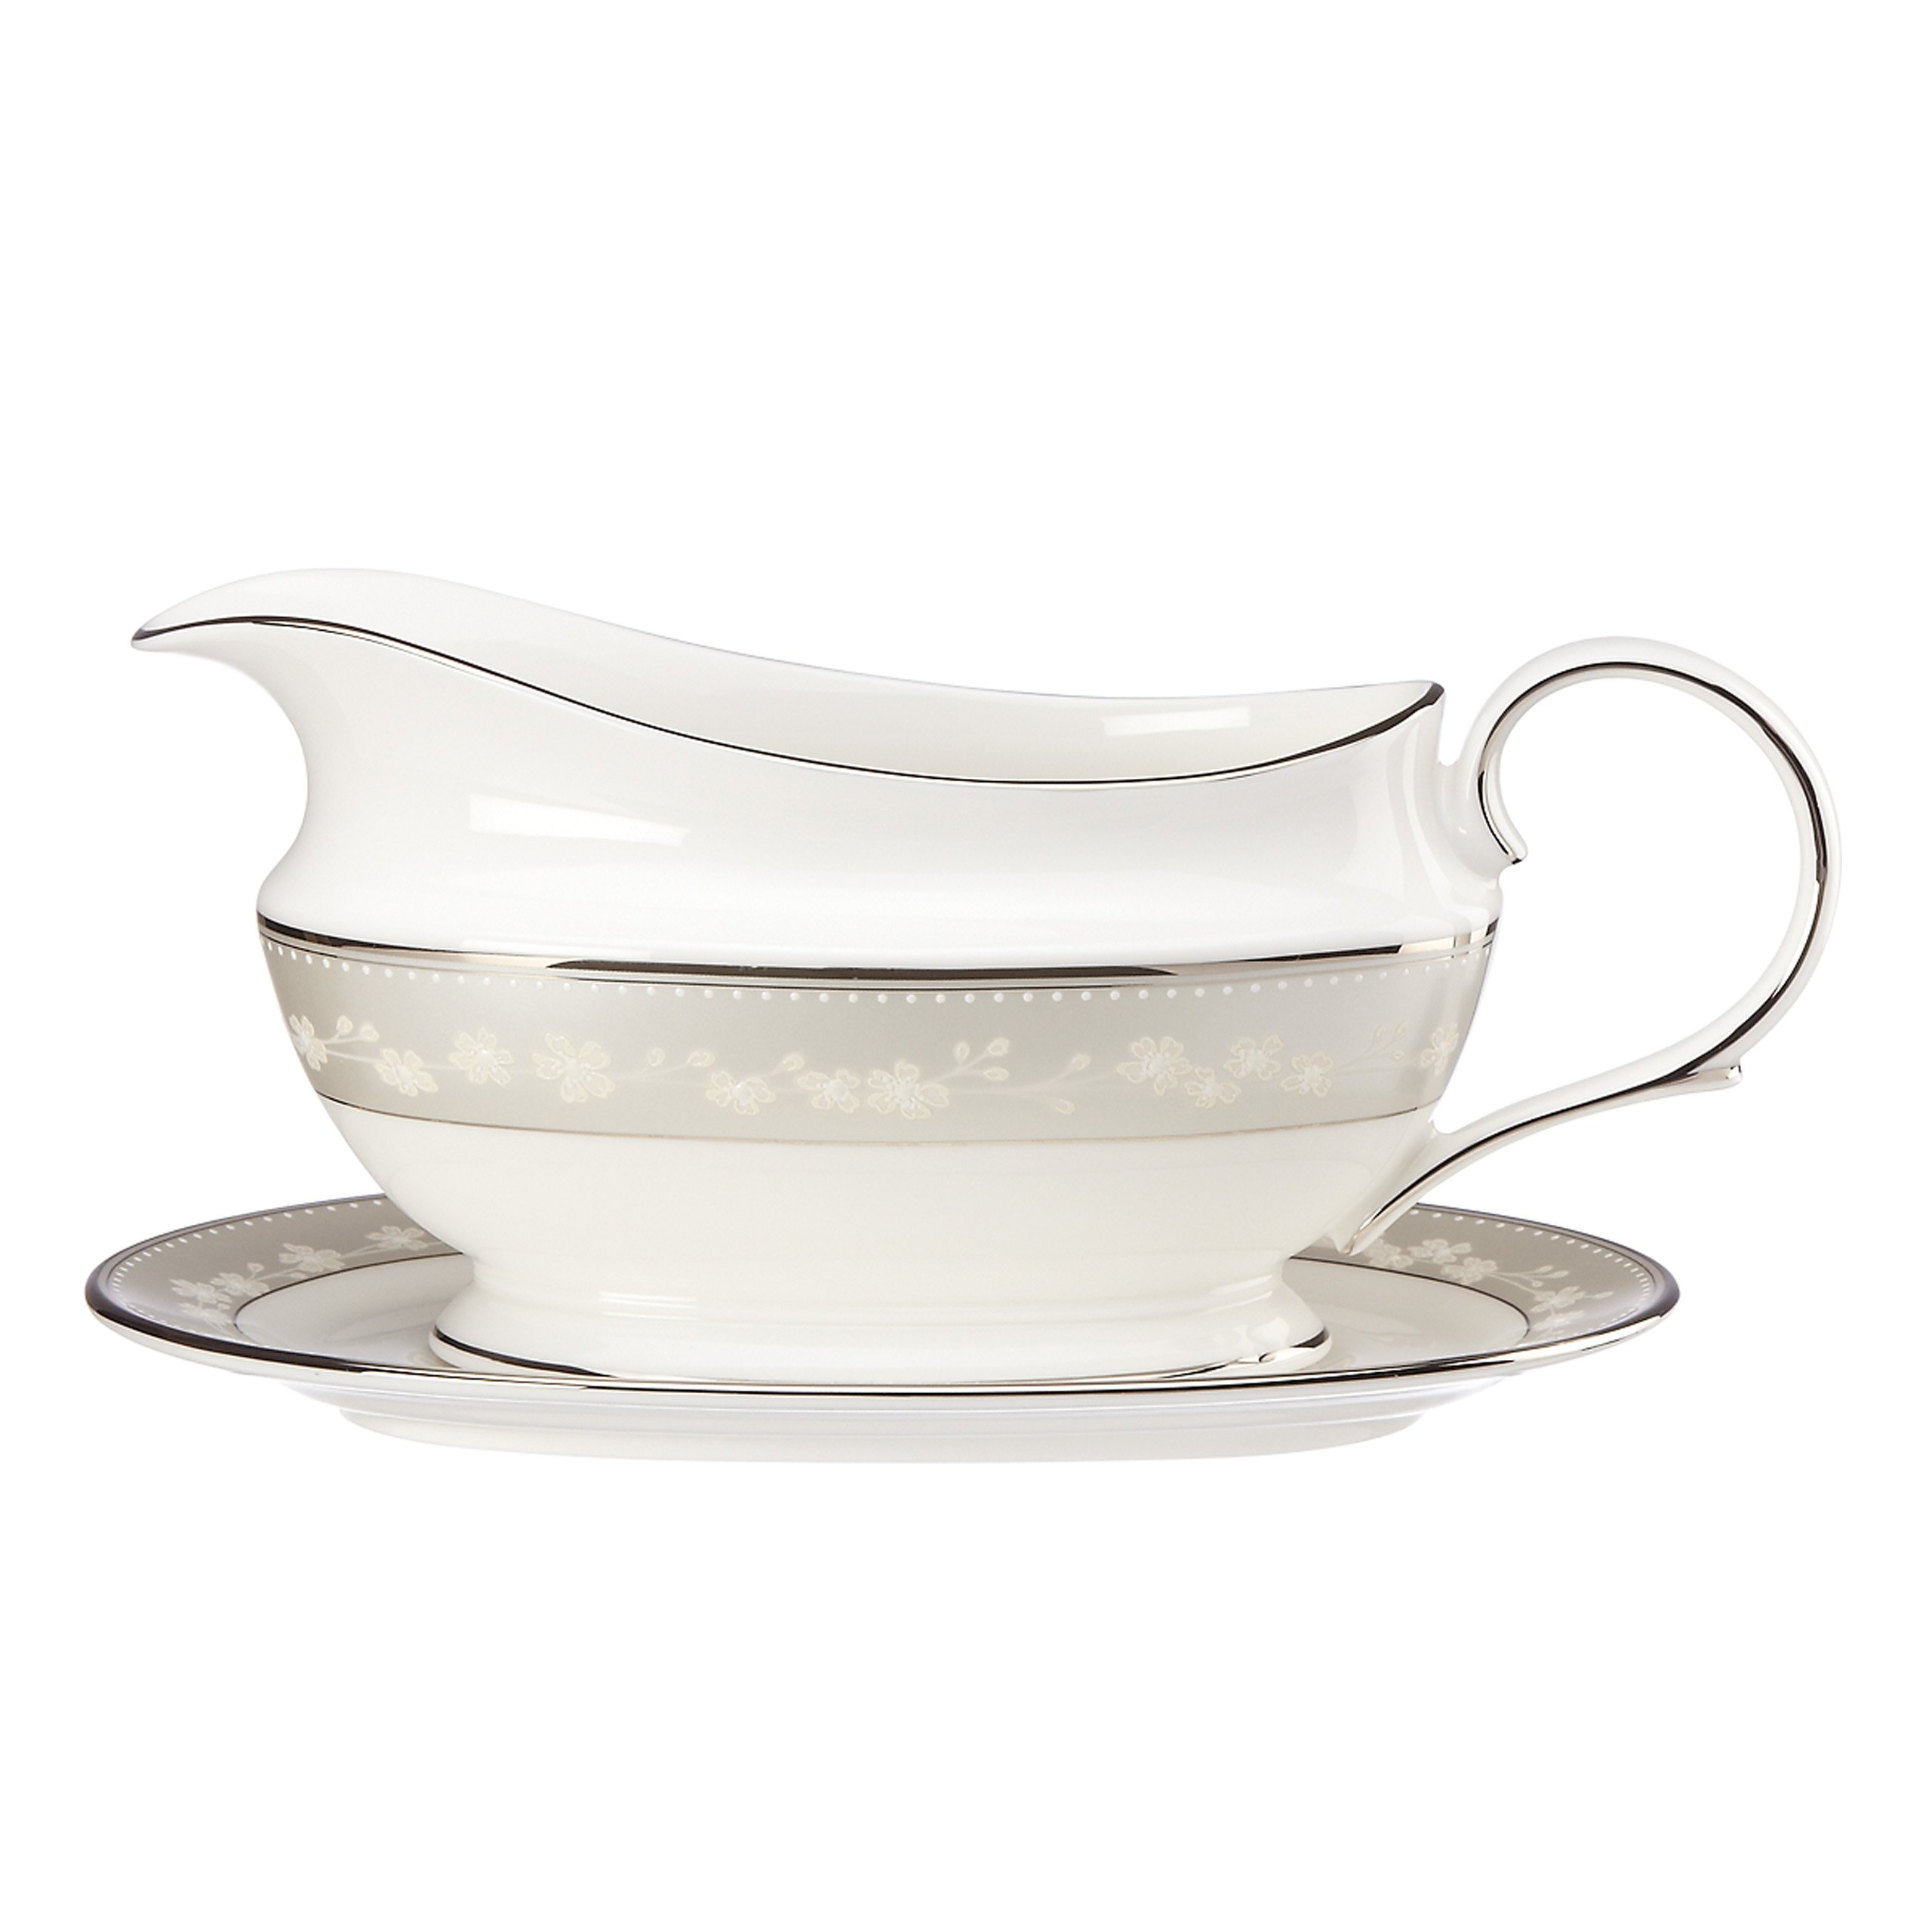 Lenox Bellina Sauce Boat and Stand, White